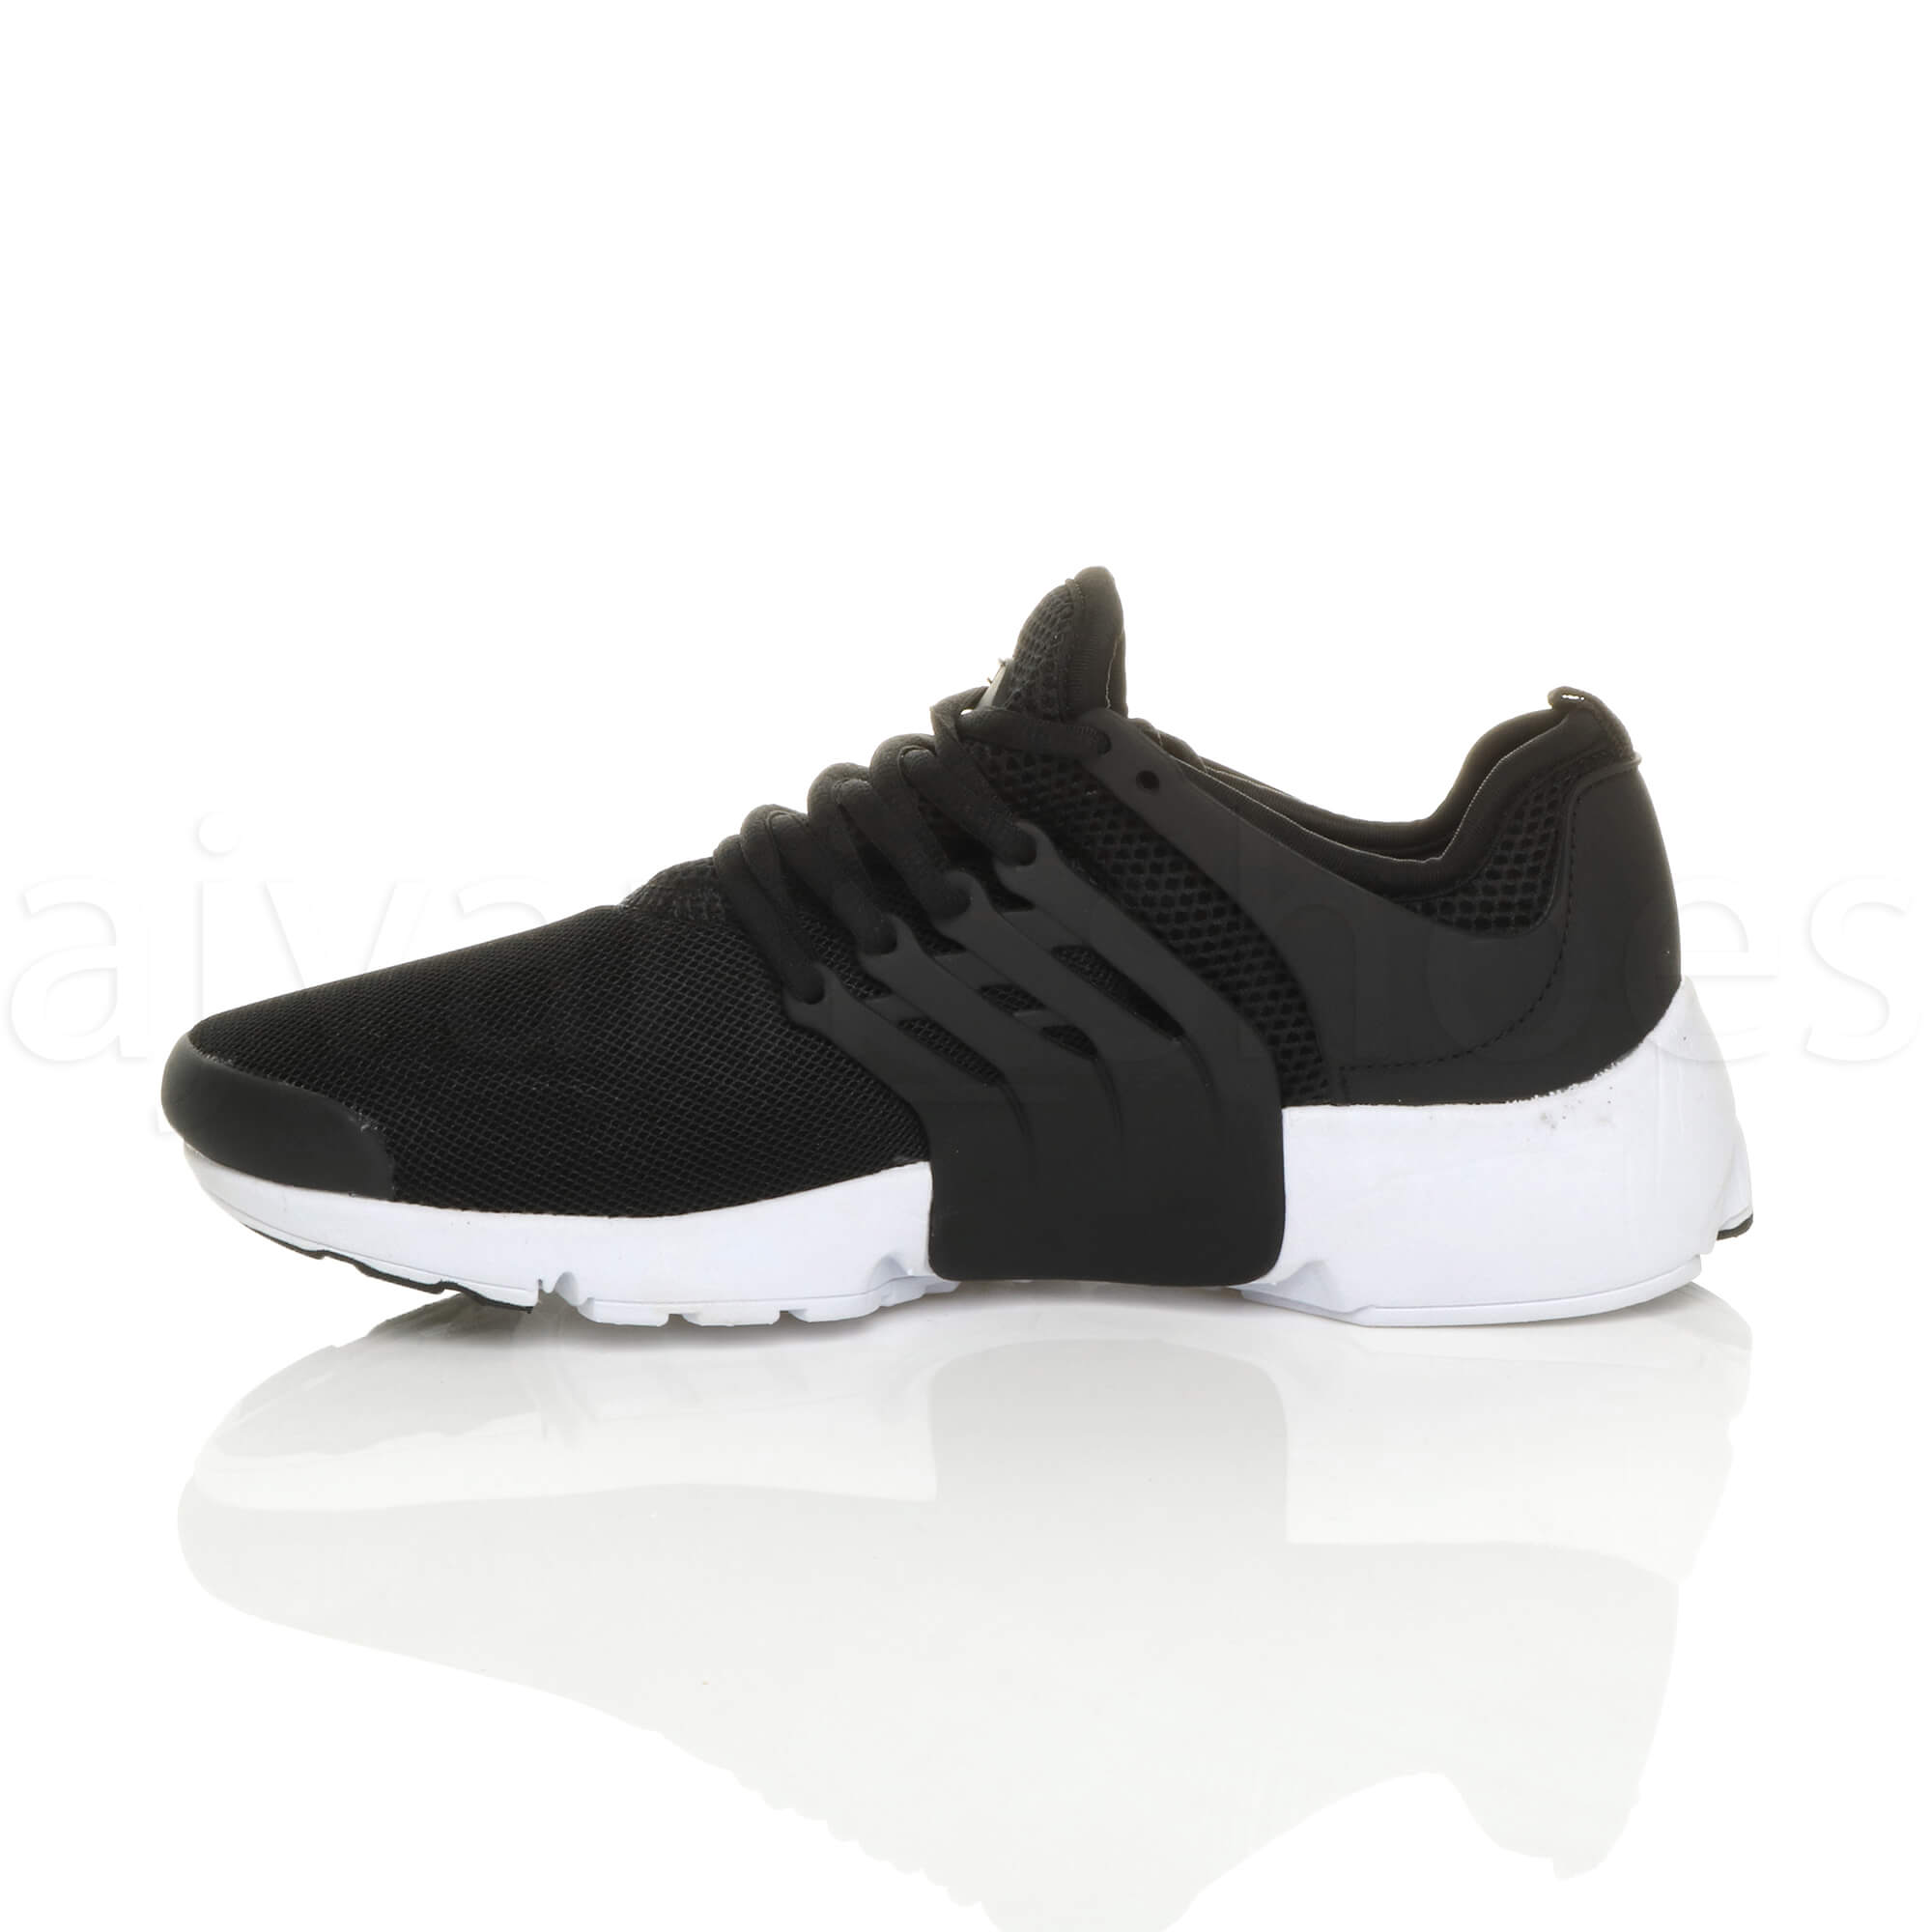 MENS-LACE-UP-SPORTS-GYM-FITNESS-RUNNING-FLEXIBLE-TRAINERS-CASUAL-SNEAKERS-SIZE thumbnail 12